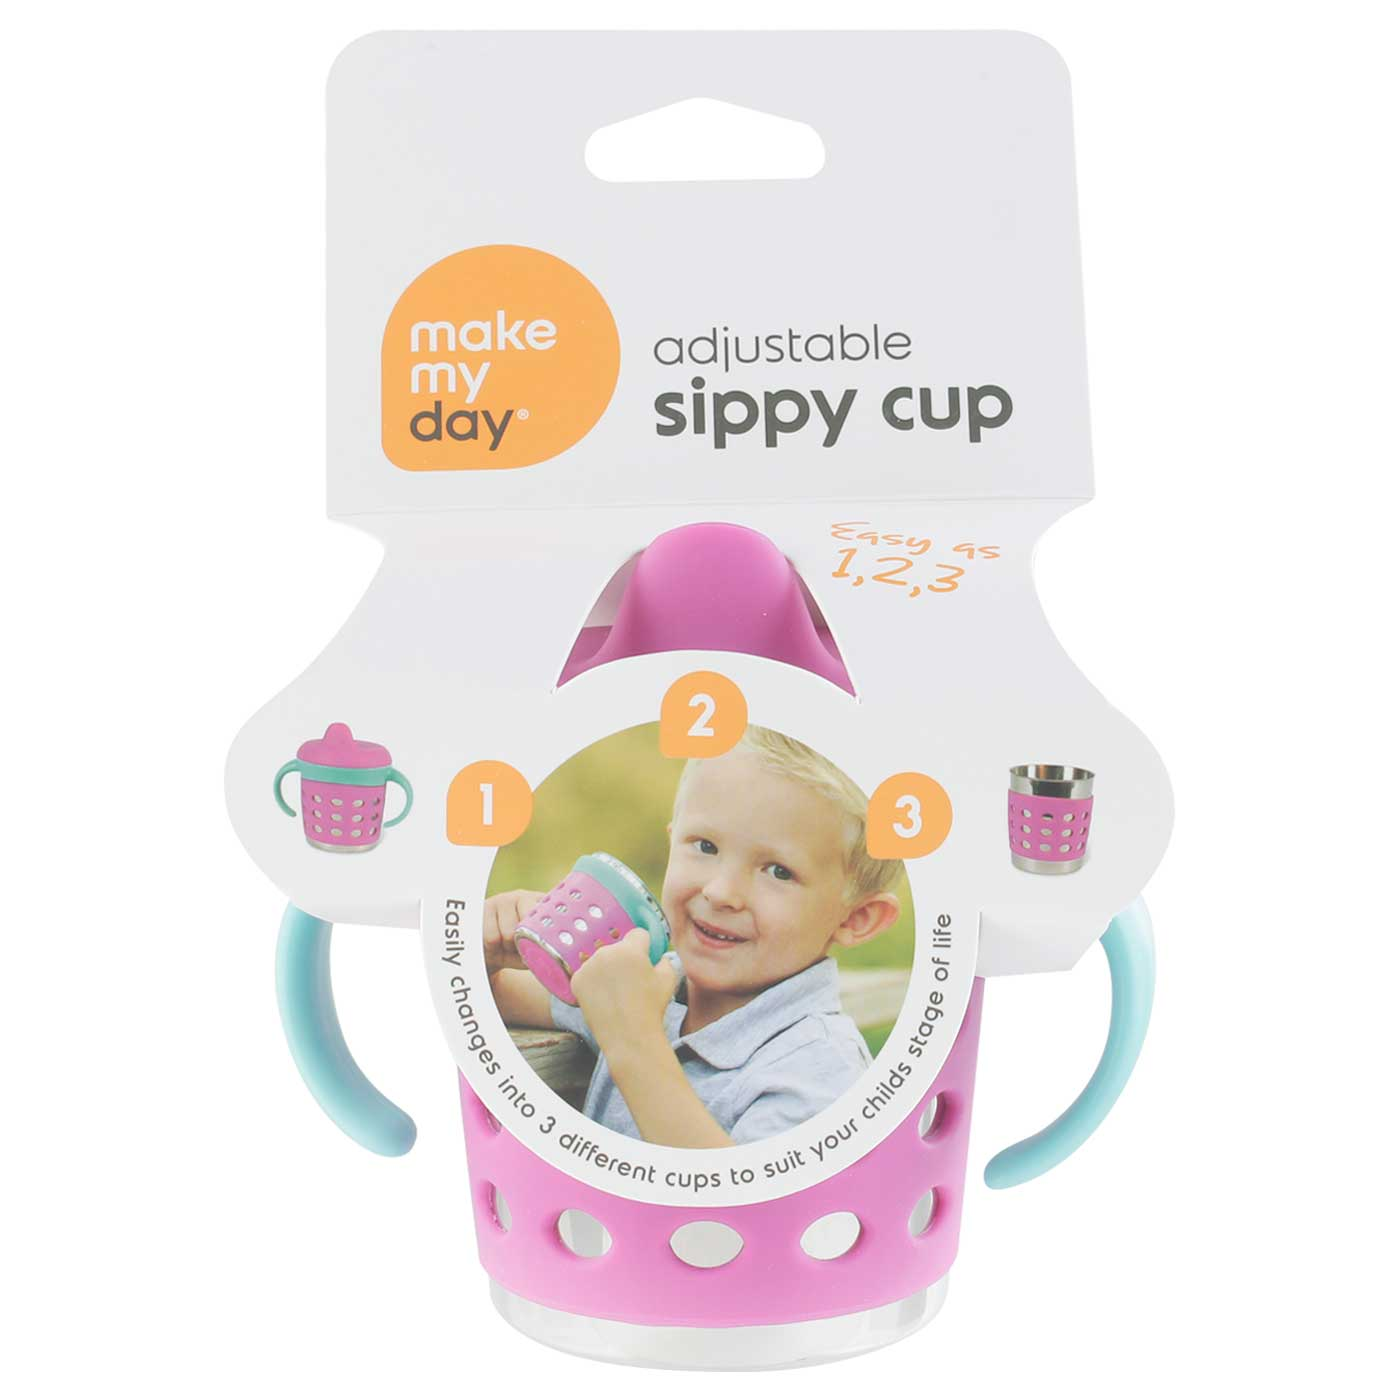 Make-My-Day Adjustable Sippy Cup - Blue/Purple